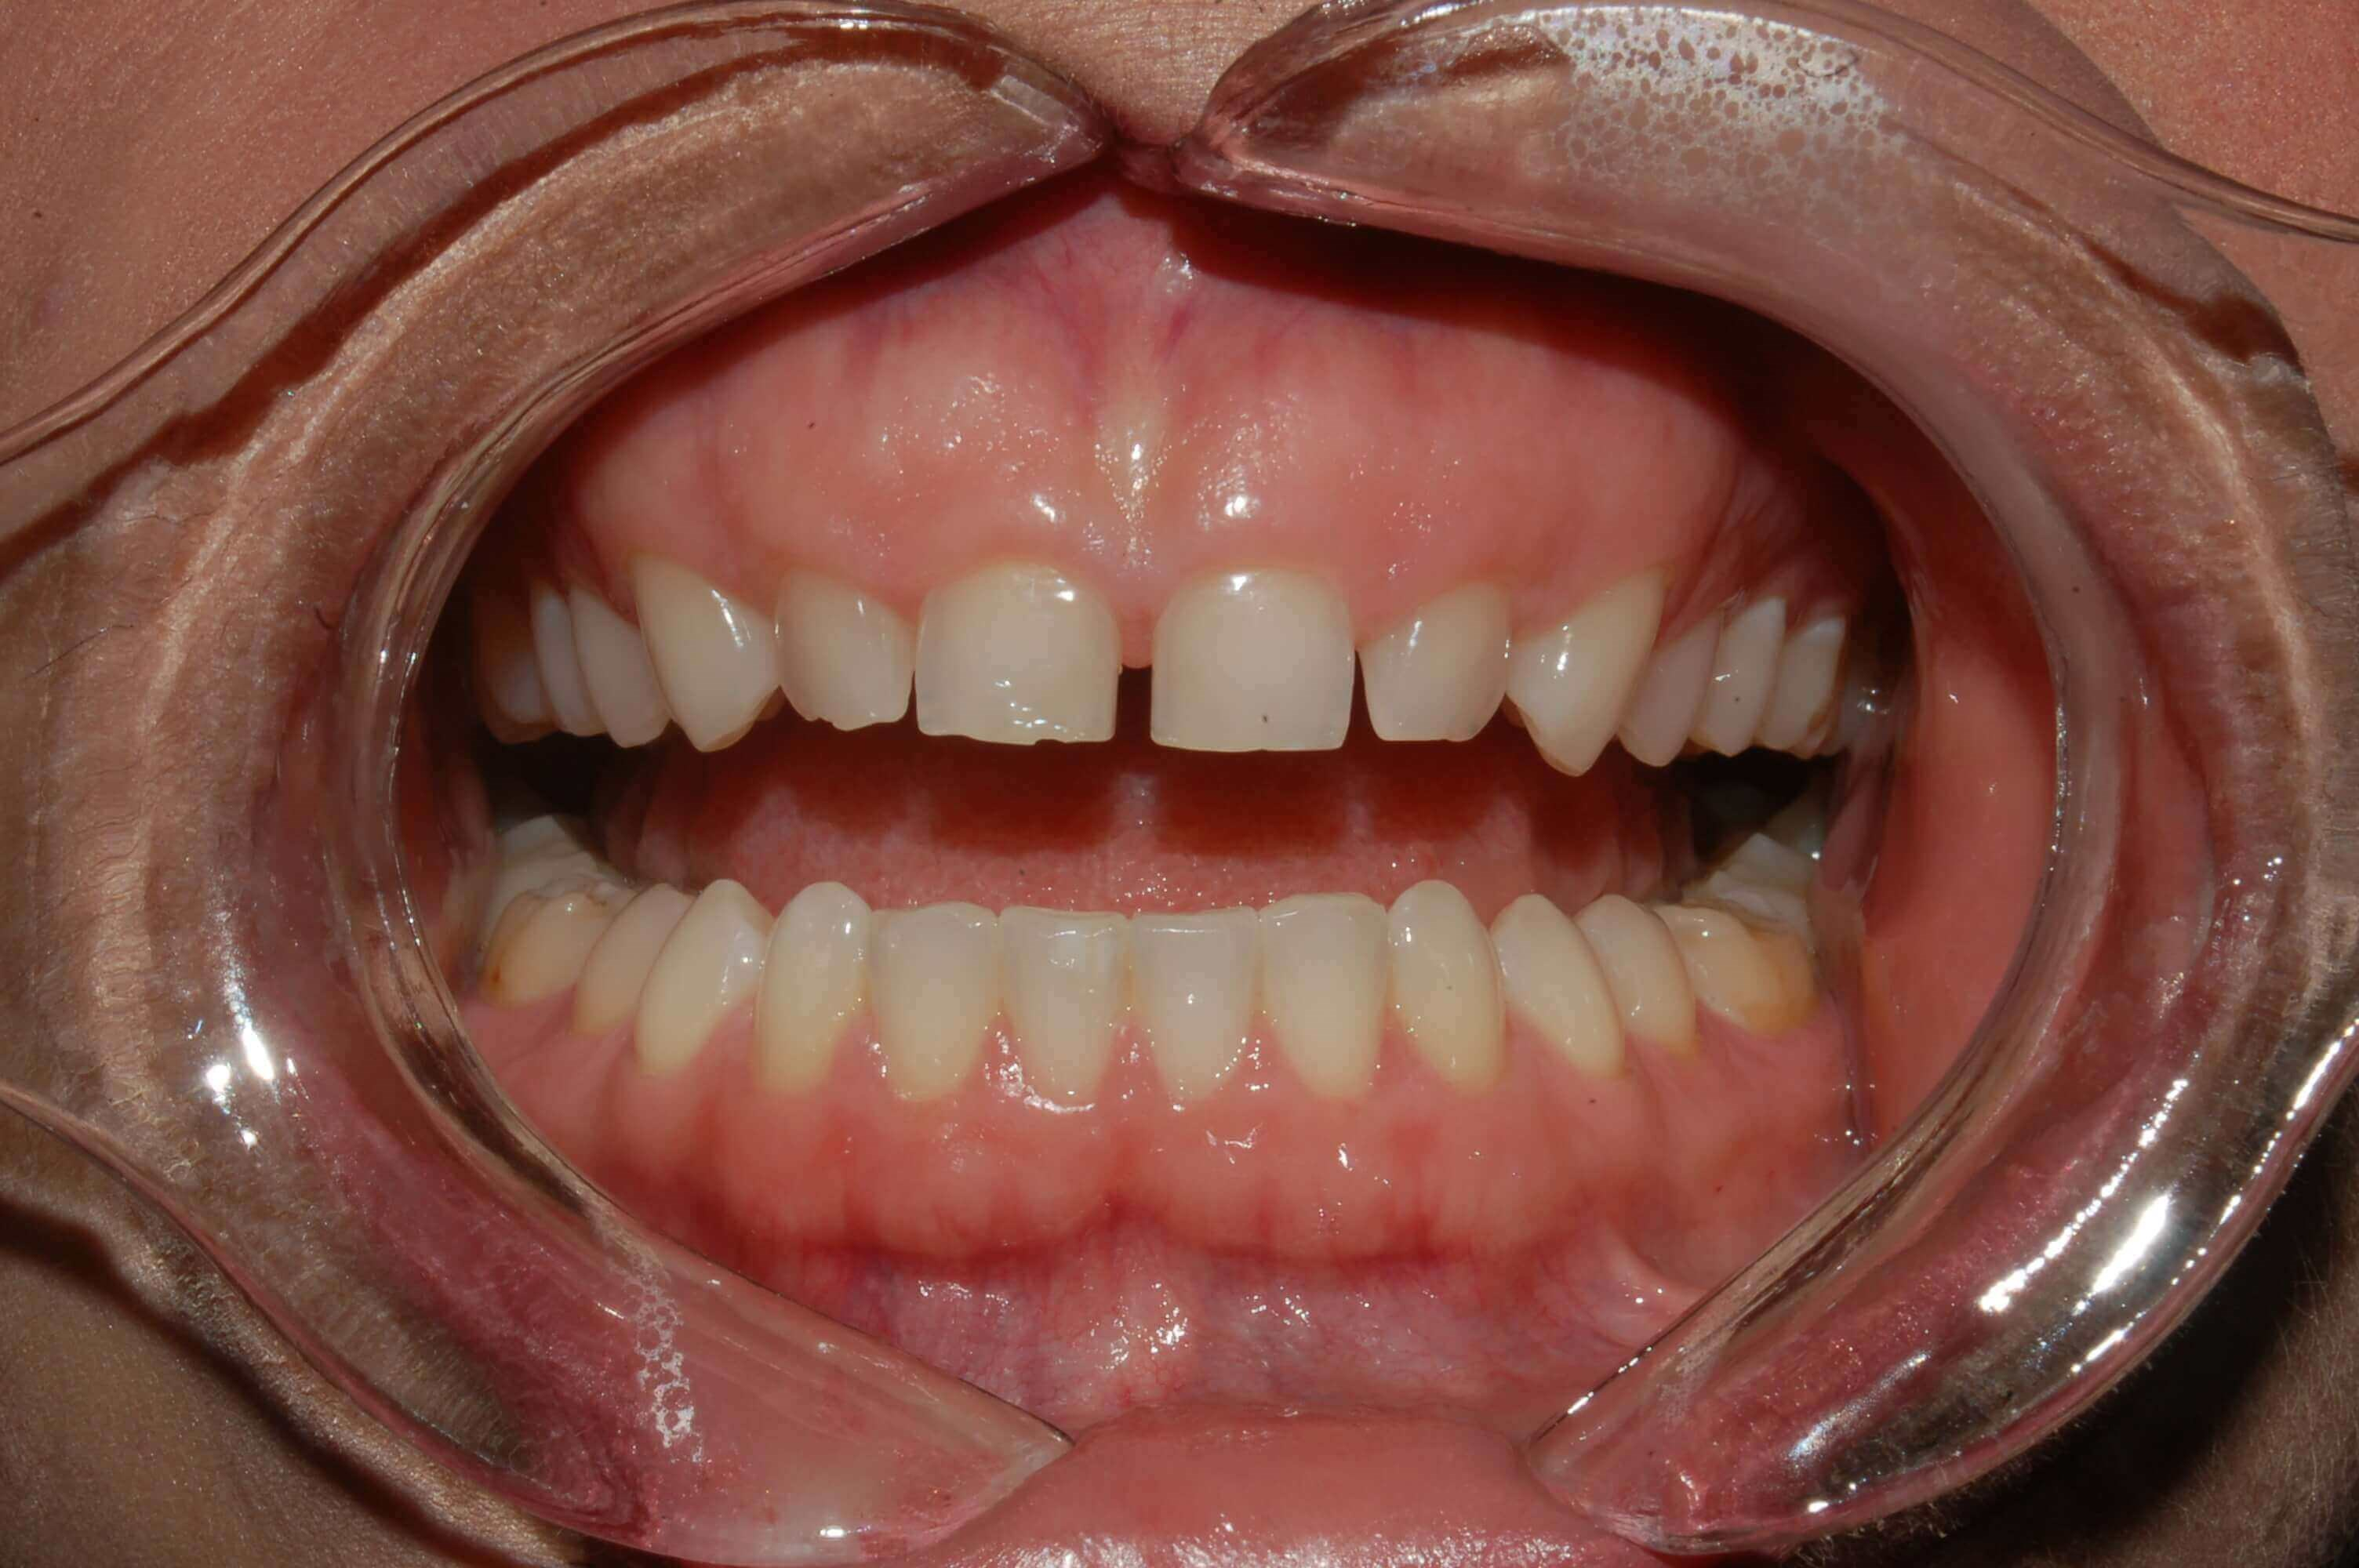 Esthetic Crown lengthening before